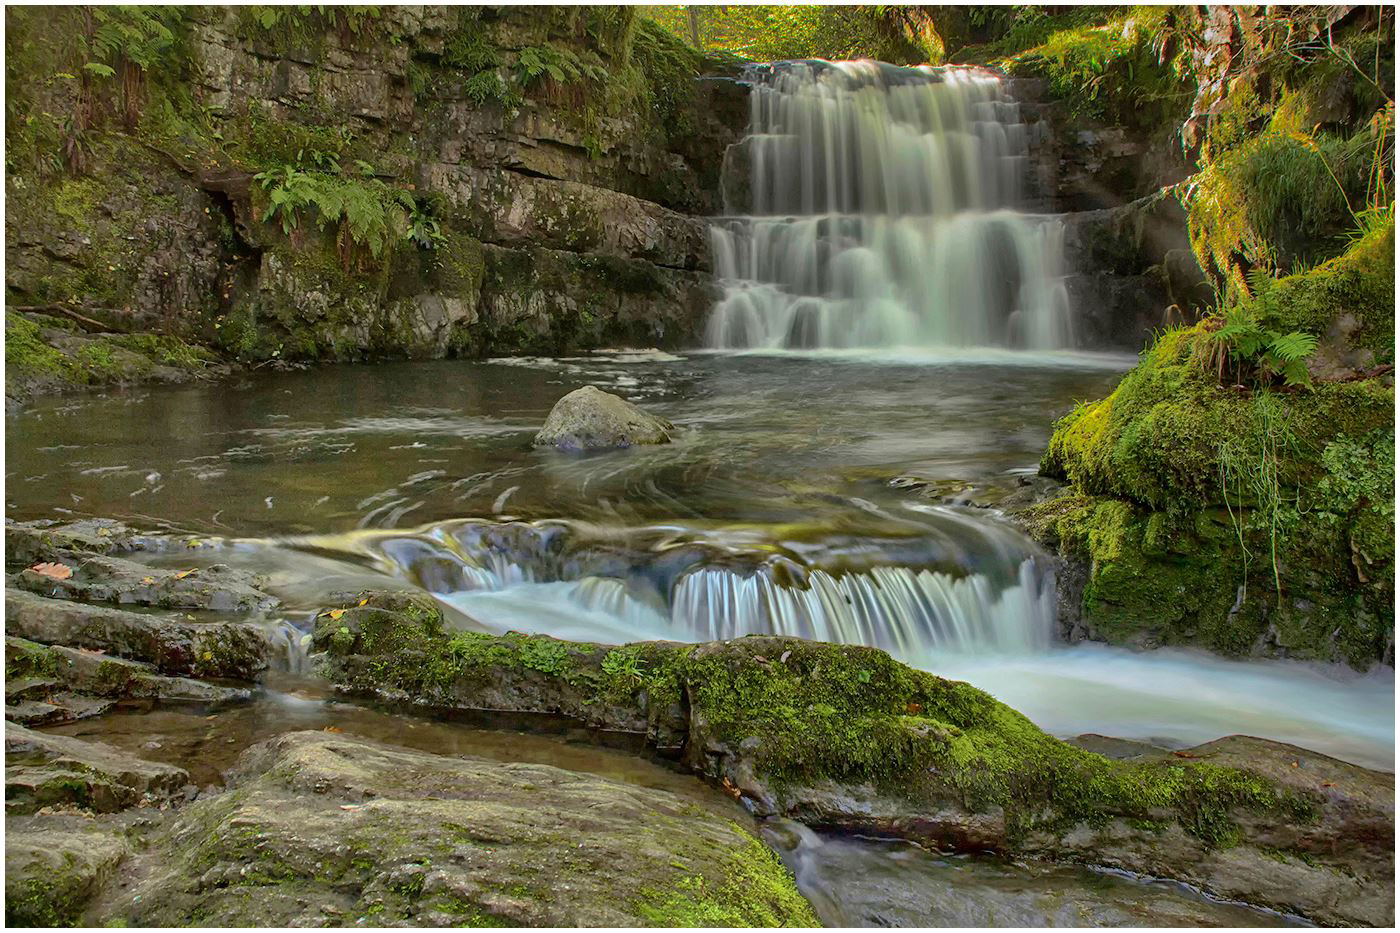 """Sychryd Cascades"" by Gerry Cartwright"